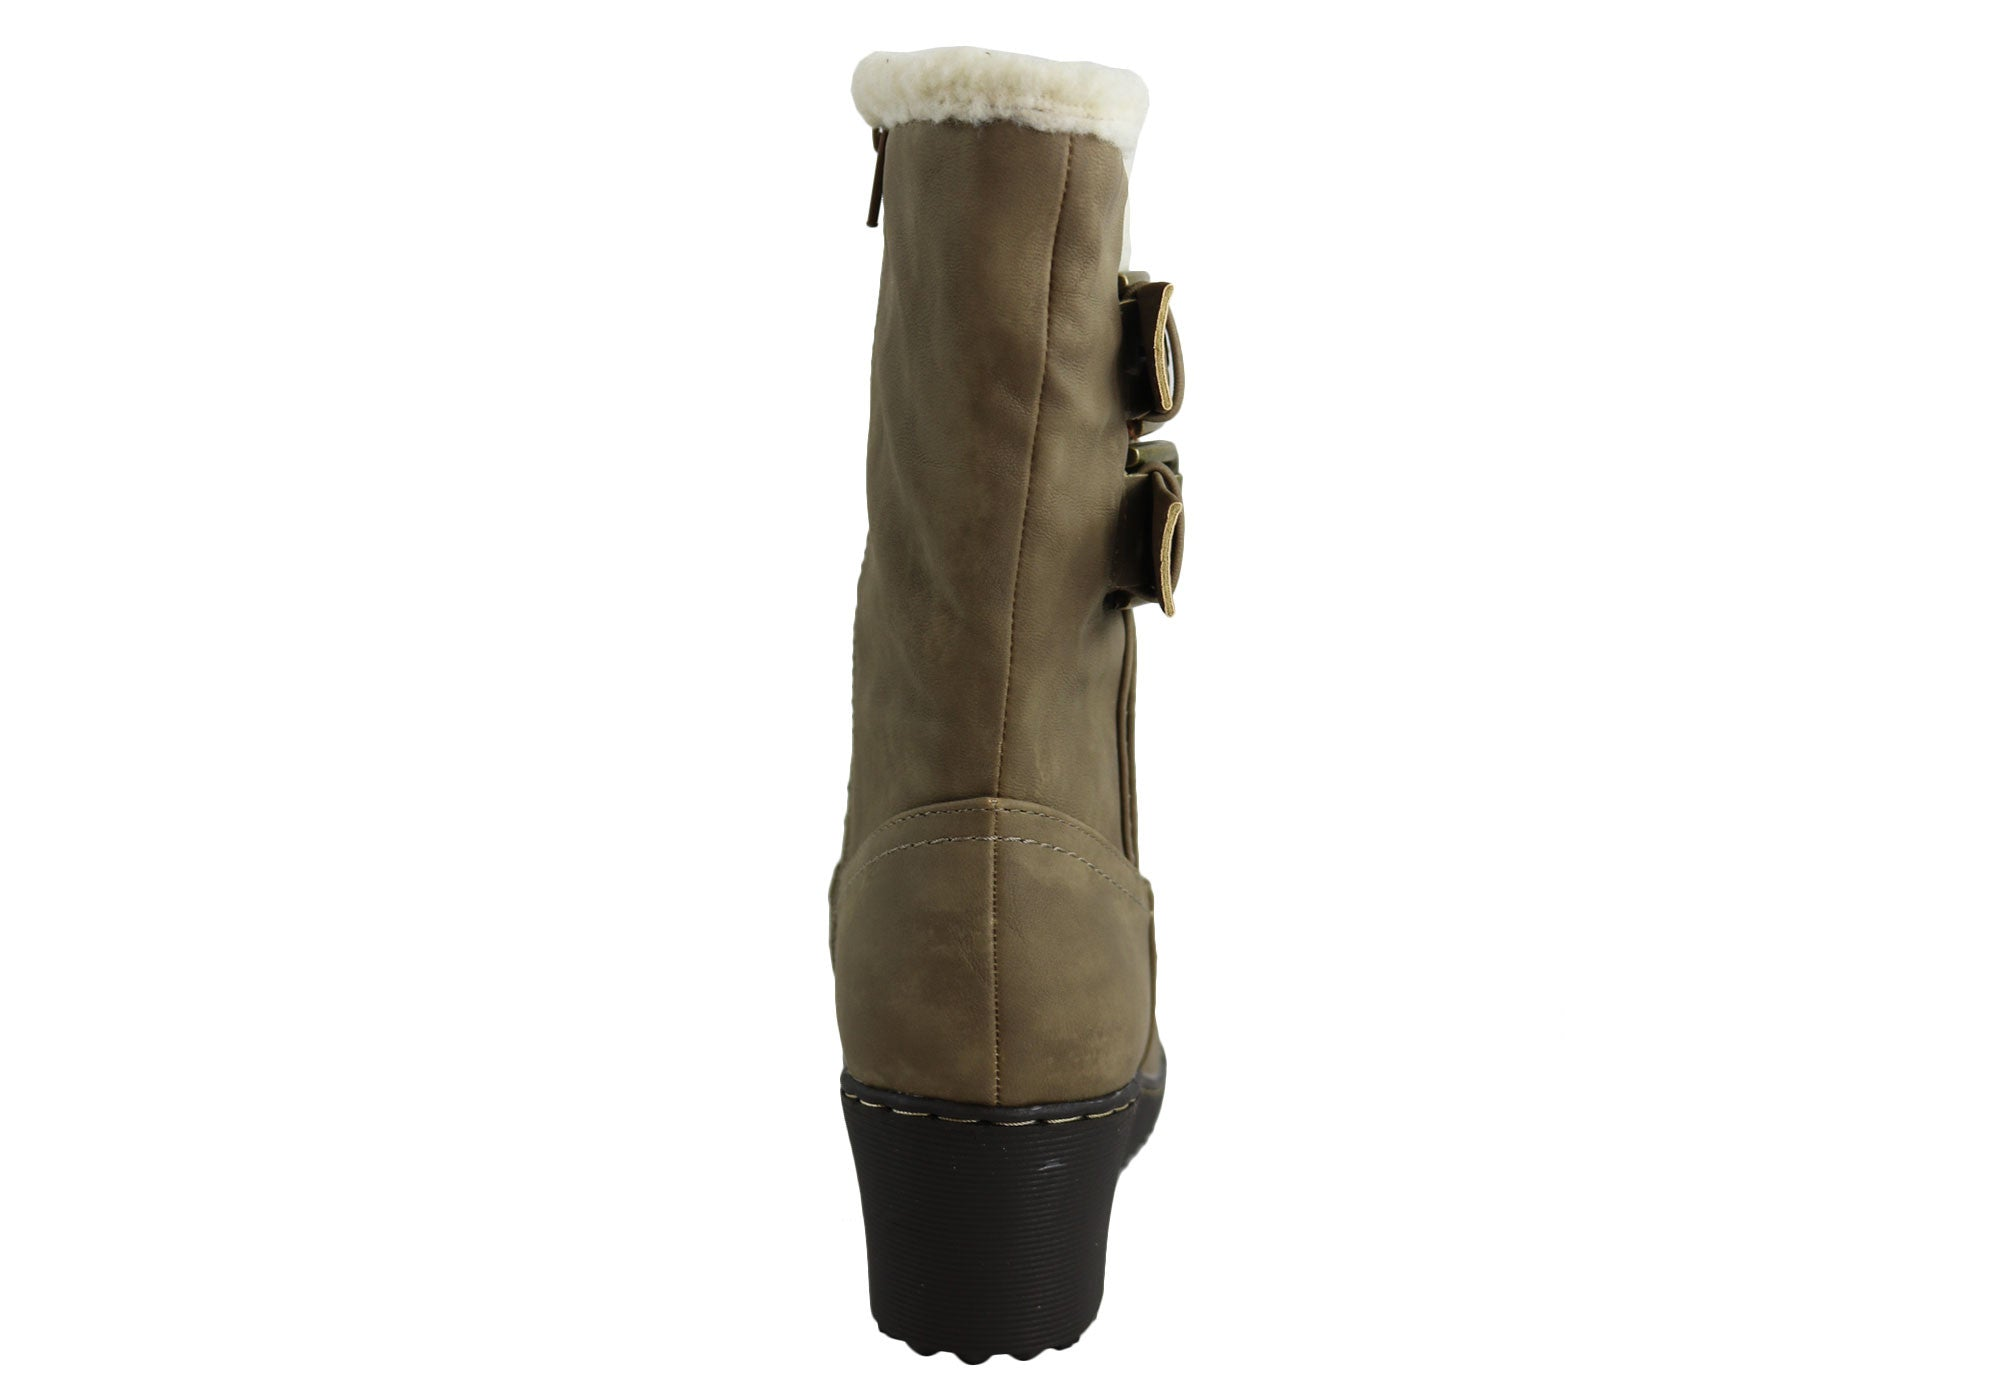 Bellissimo Kathleen Womens Fur Lined Wedge Mid Calf Boots